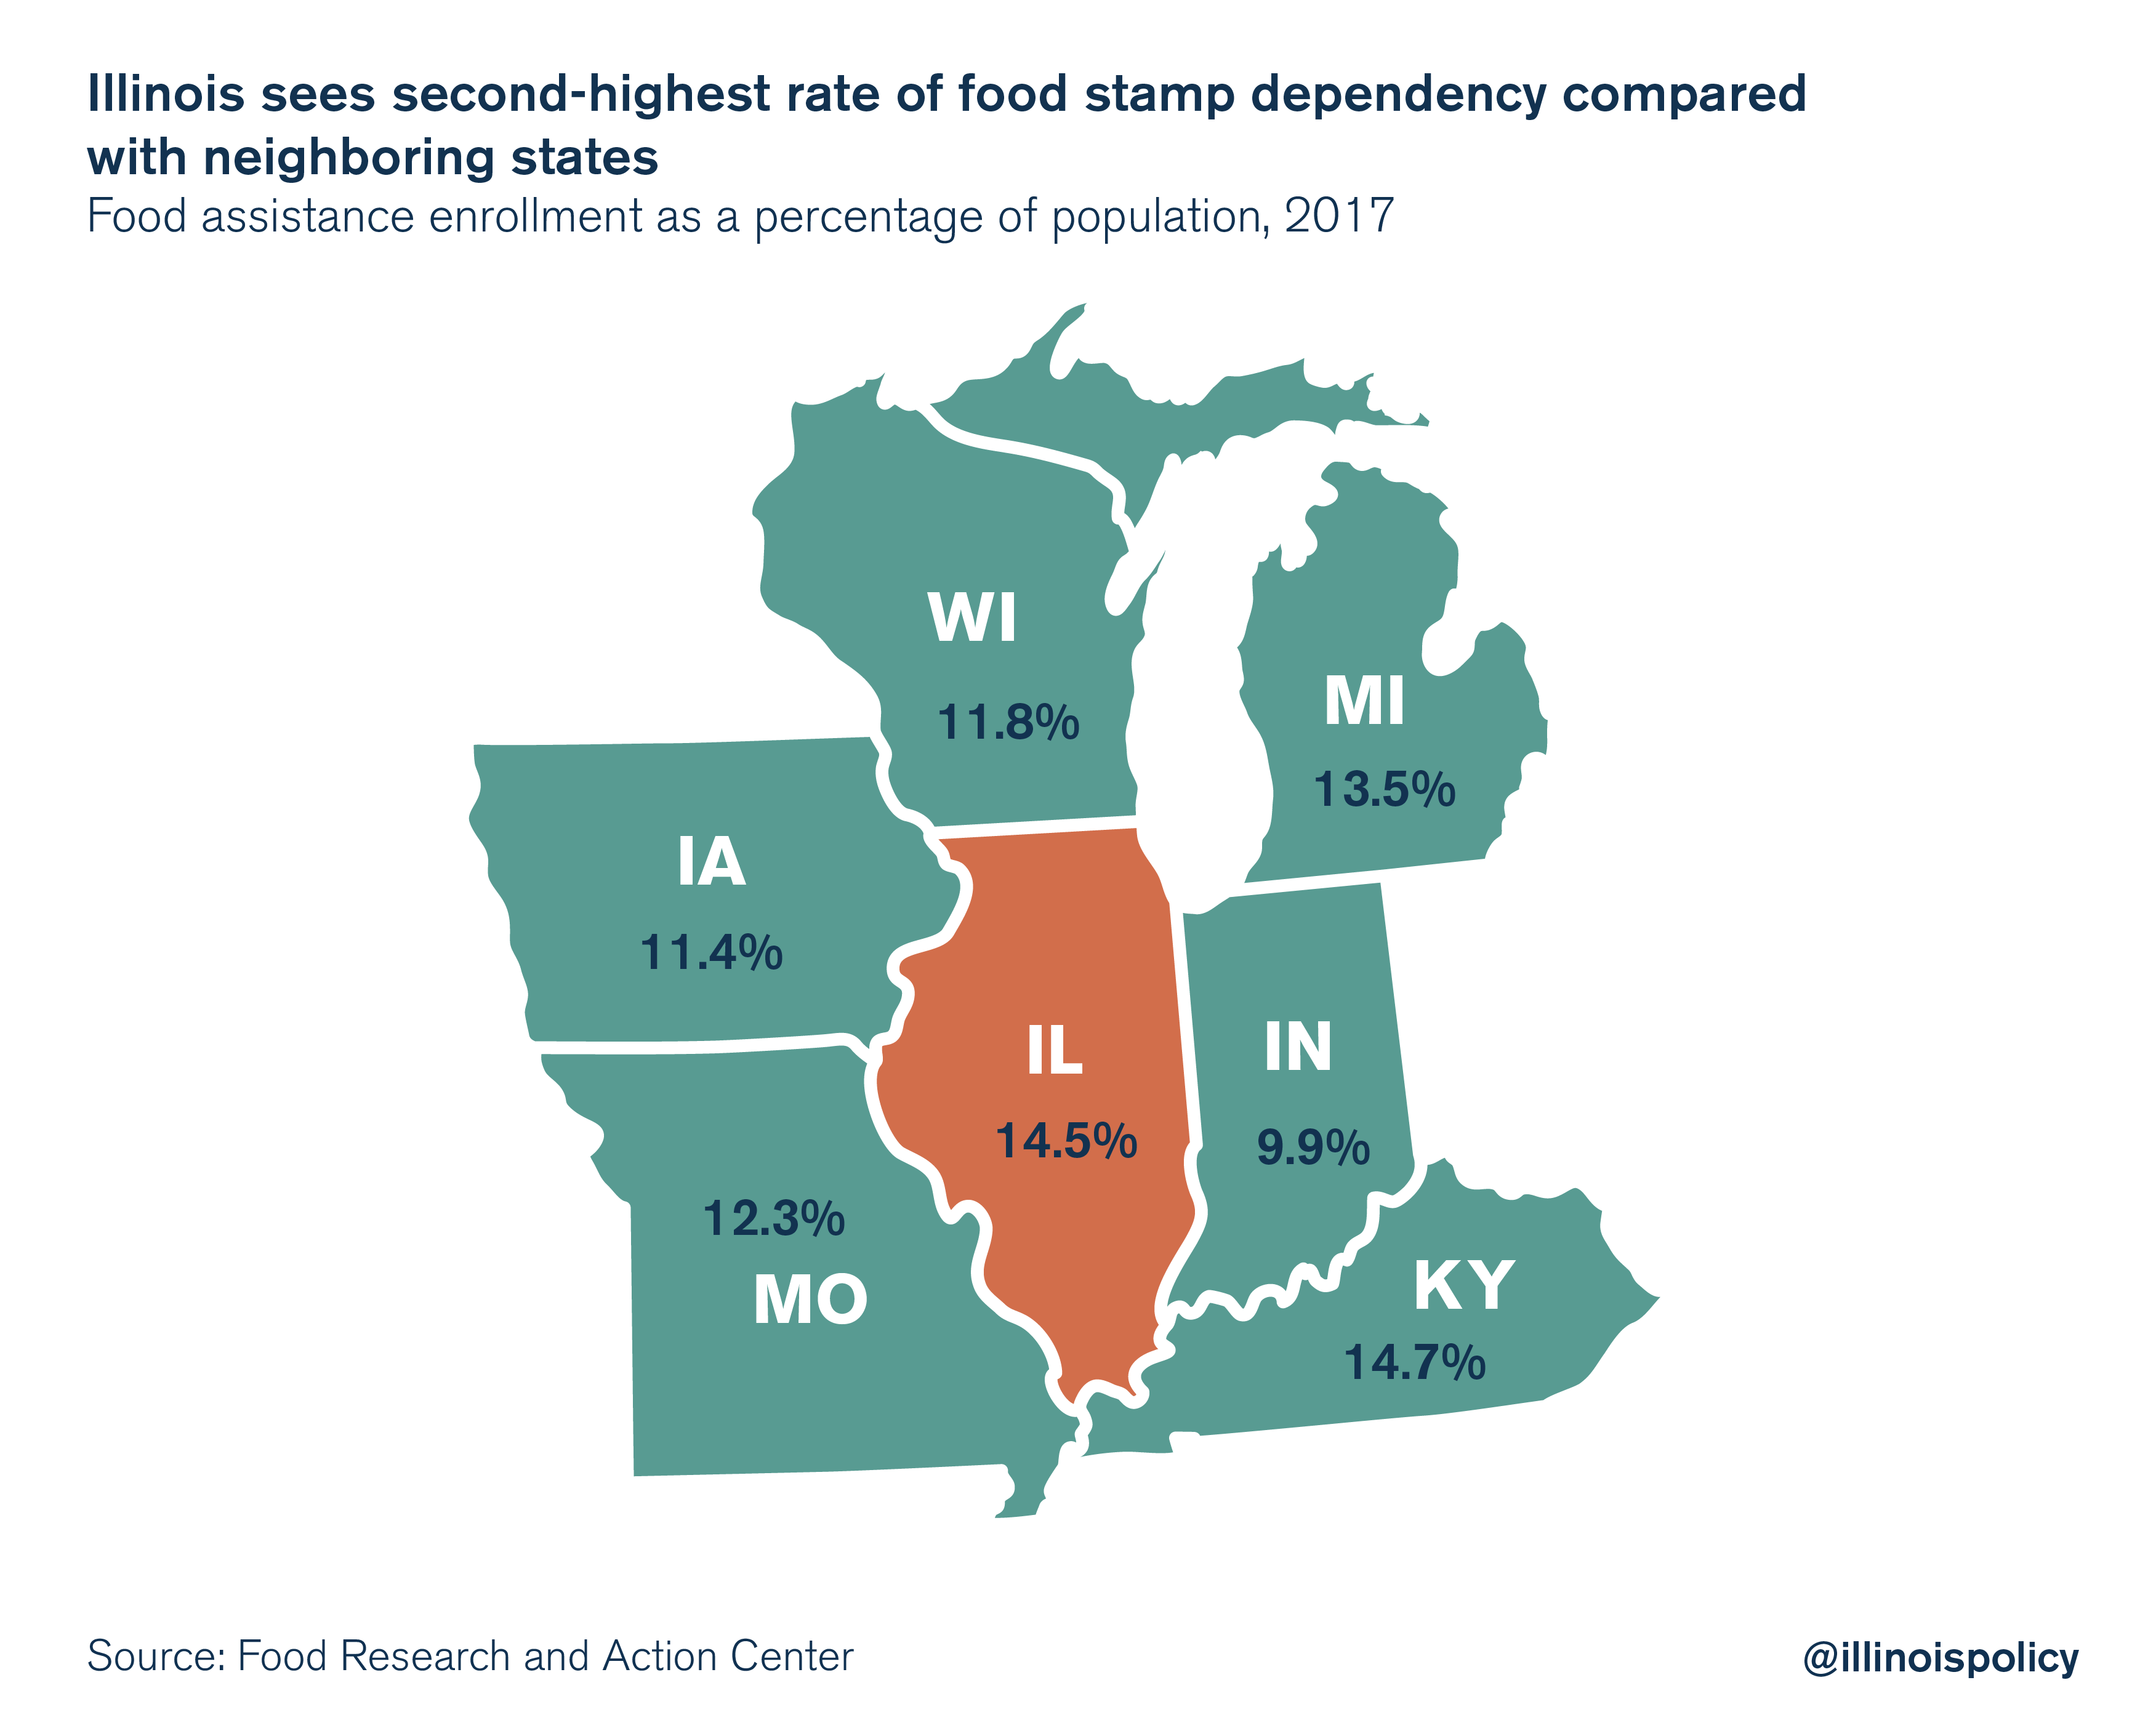 Illinois sees second-highest rate rate of food stamp dependency compared with neighboring states